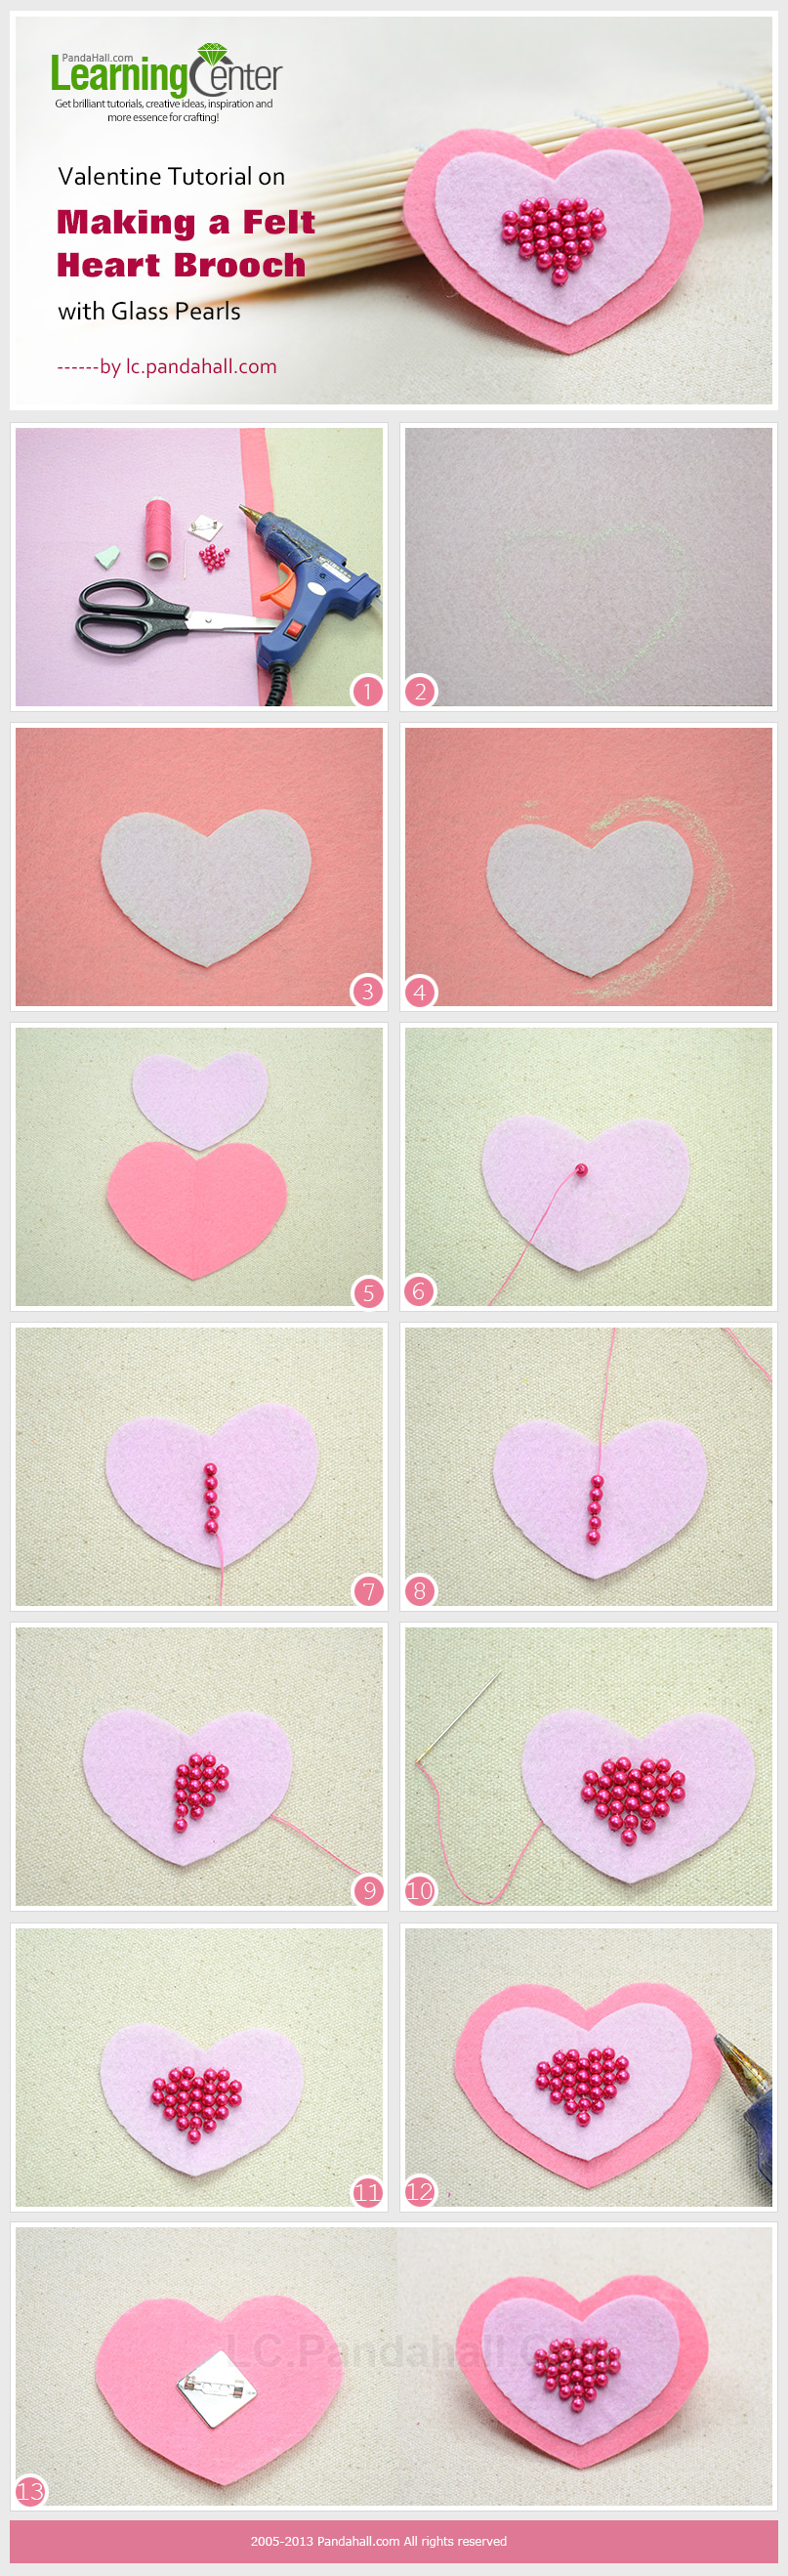 Valentine Tutorial on Making a Felt Heart Brooch with Glass Pearls